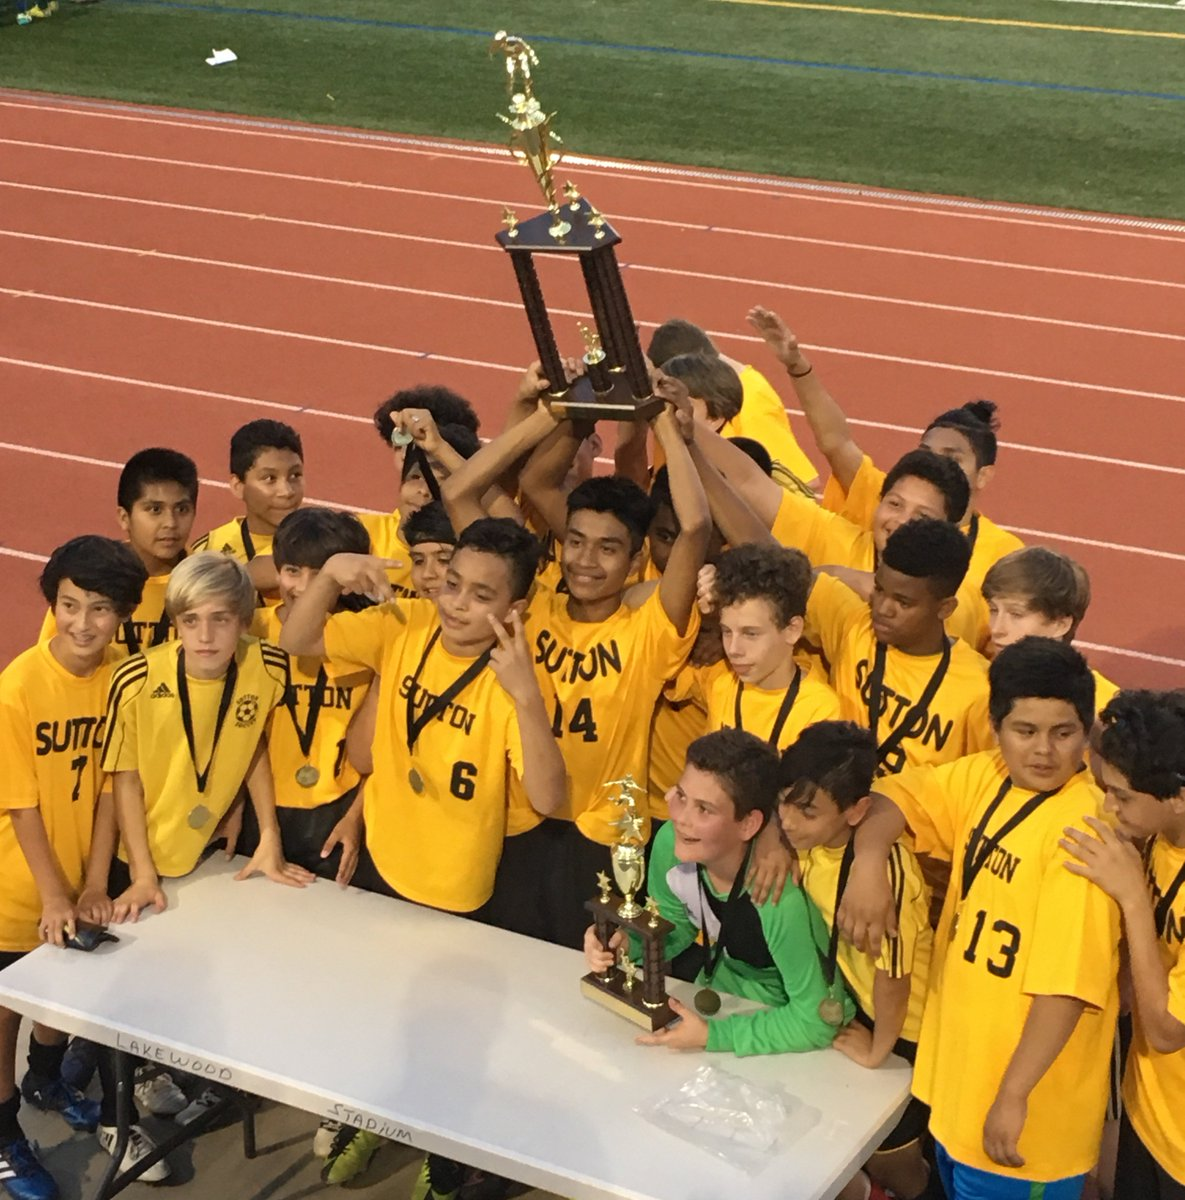 Sutton Middle School On Twitter Another Aps Championship